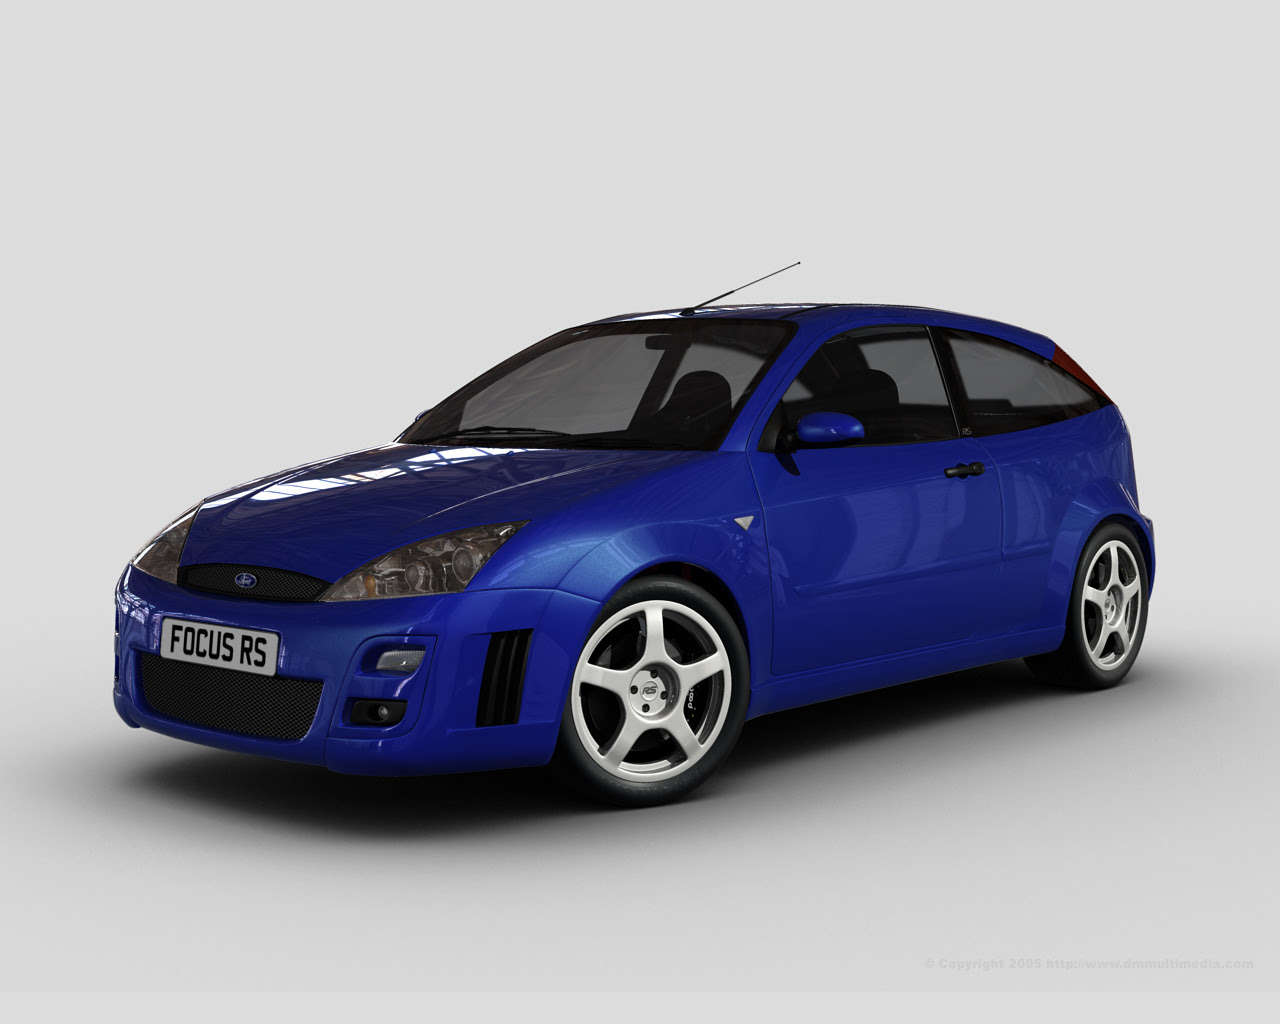 Focus RS in standard blue and